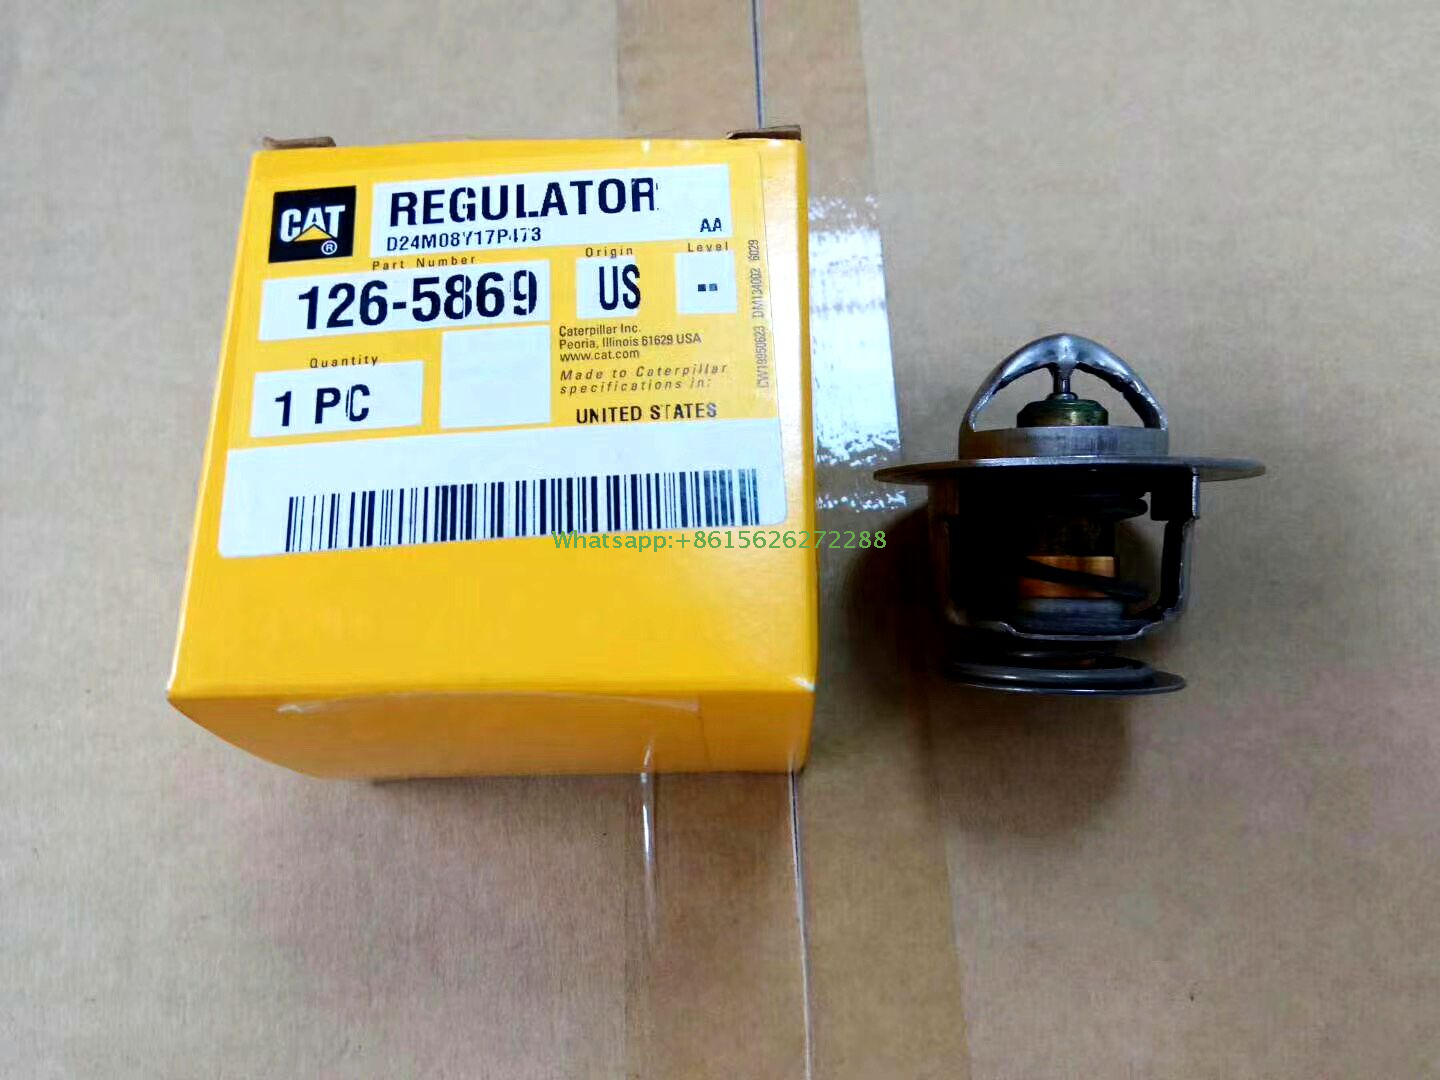 Caterpillar regulator 1265869